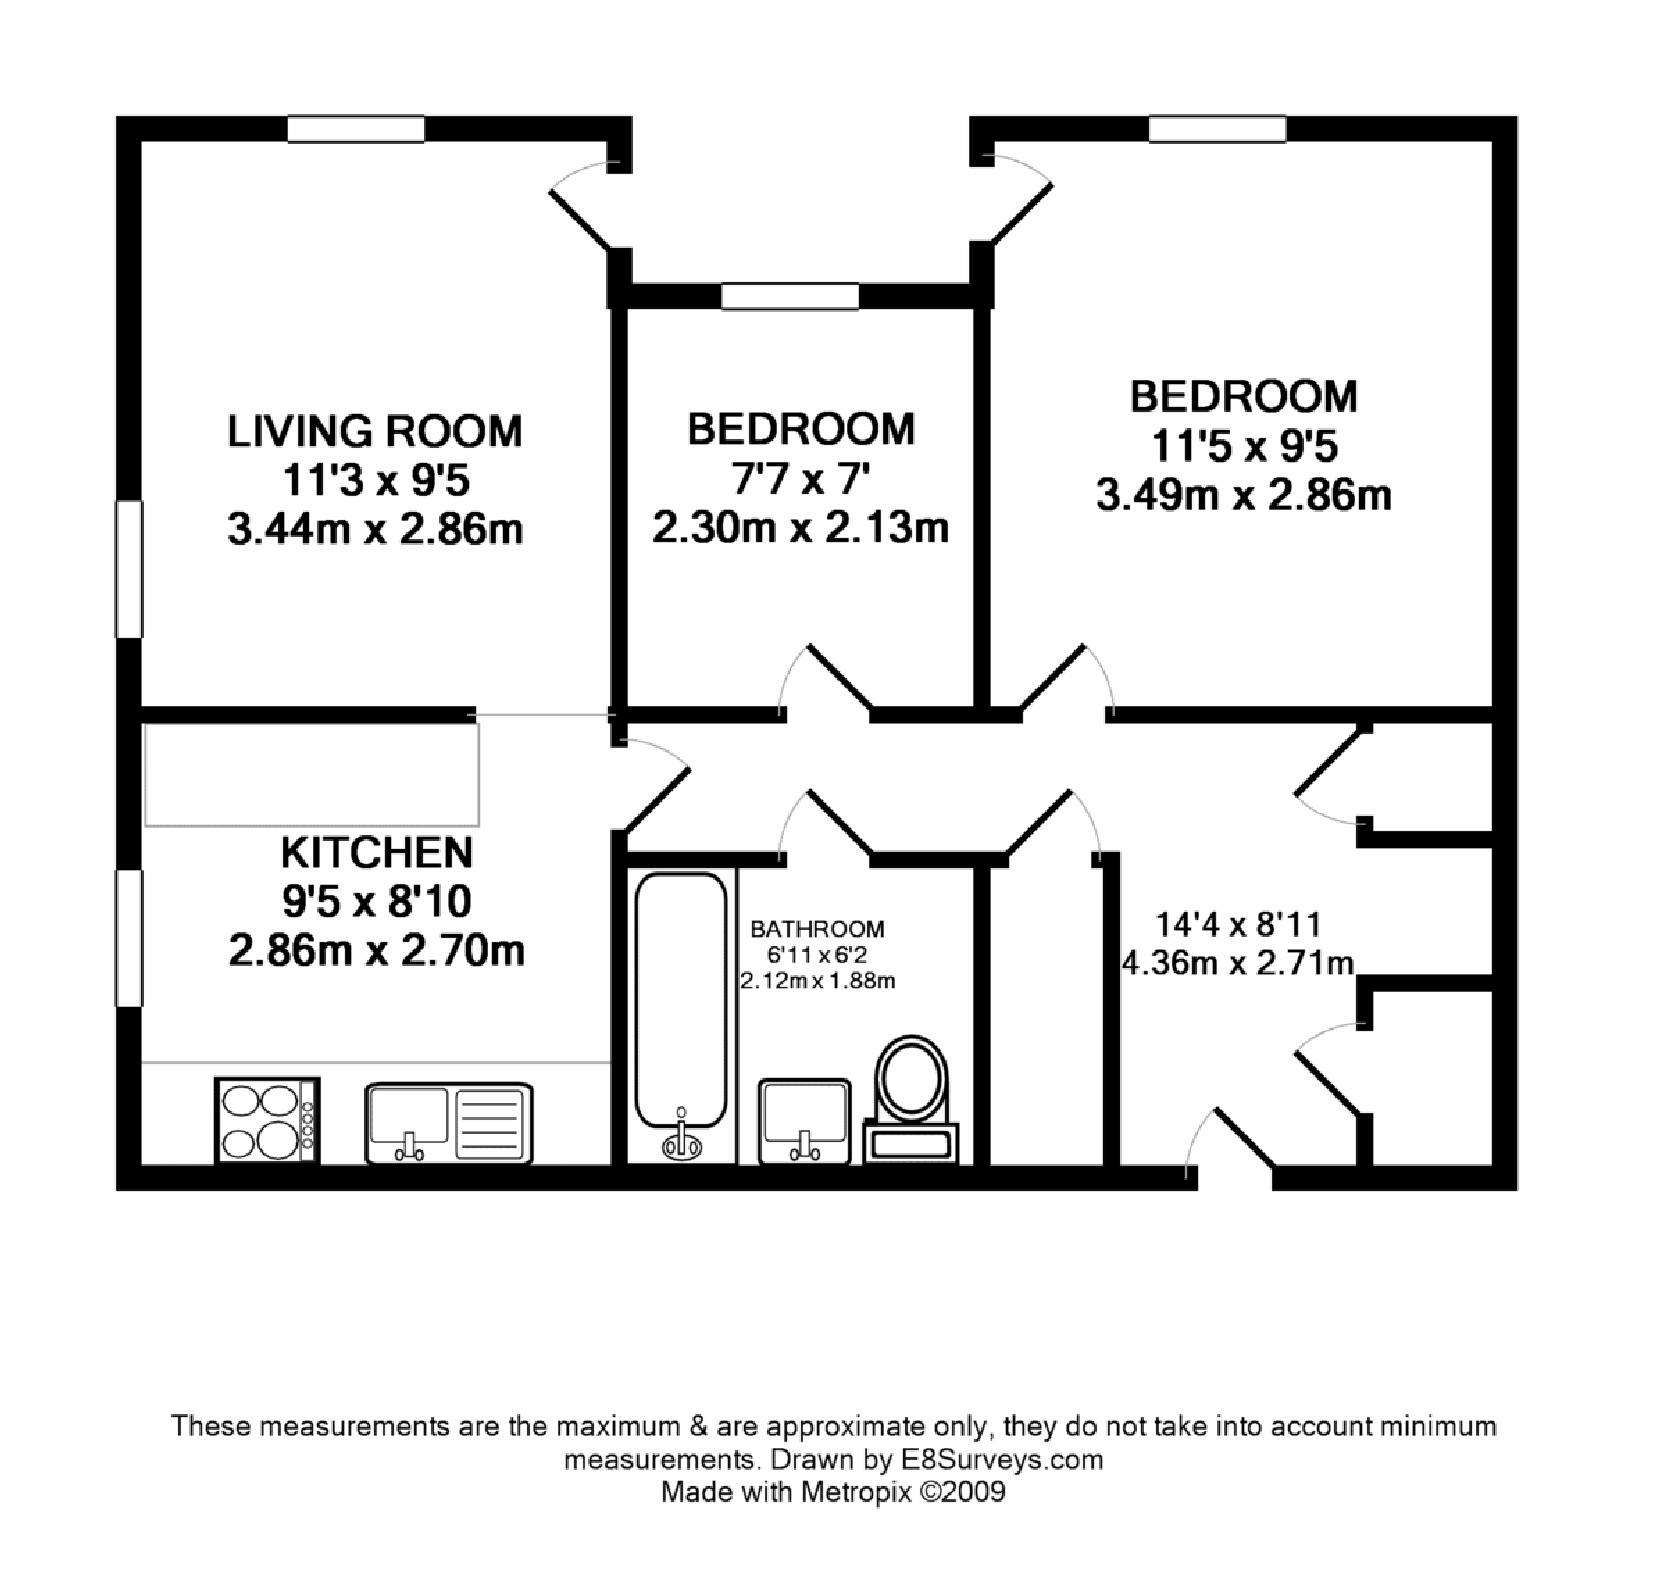 Ground Floor Unfurnished 2 Bedroom Apartment OX14 Ref 5653 Abingdon